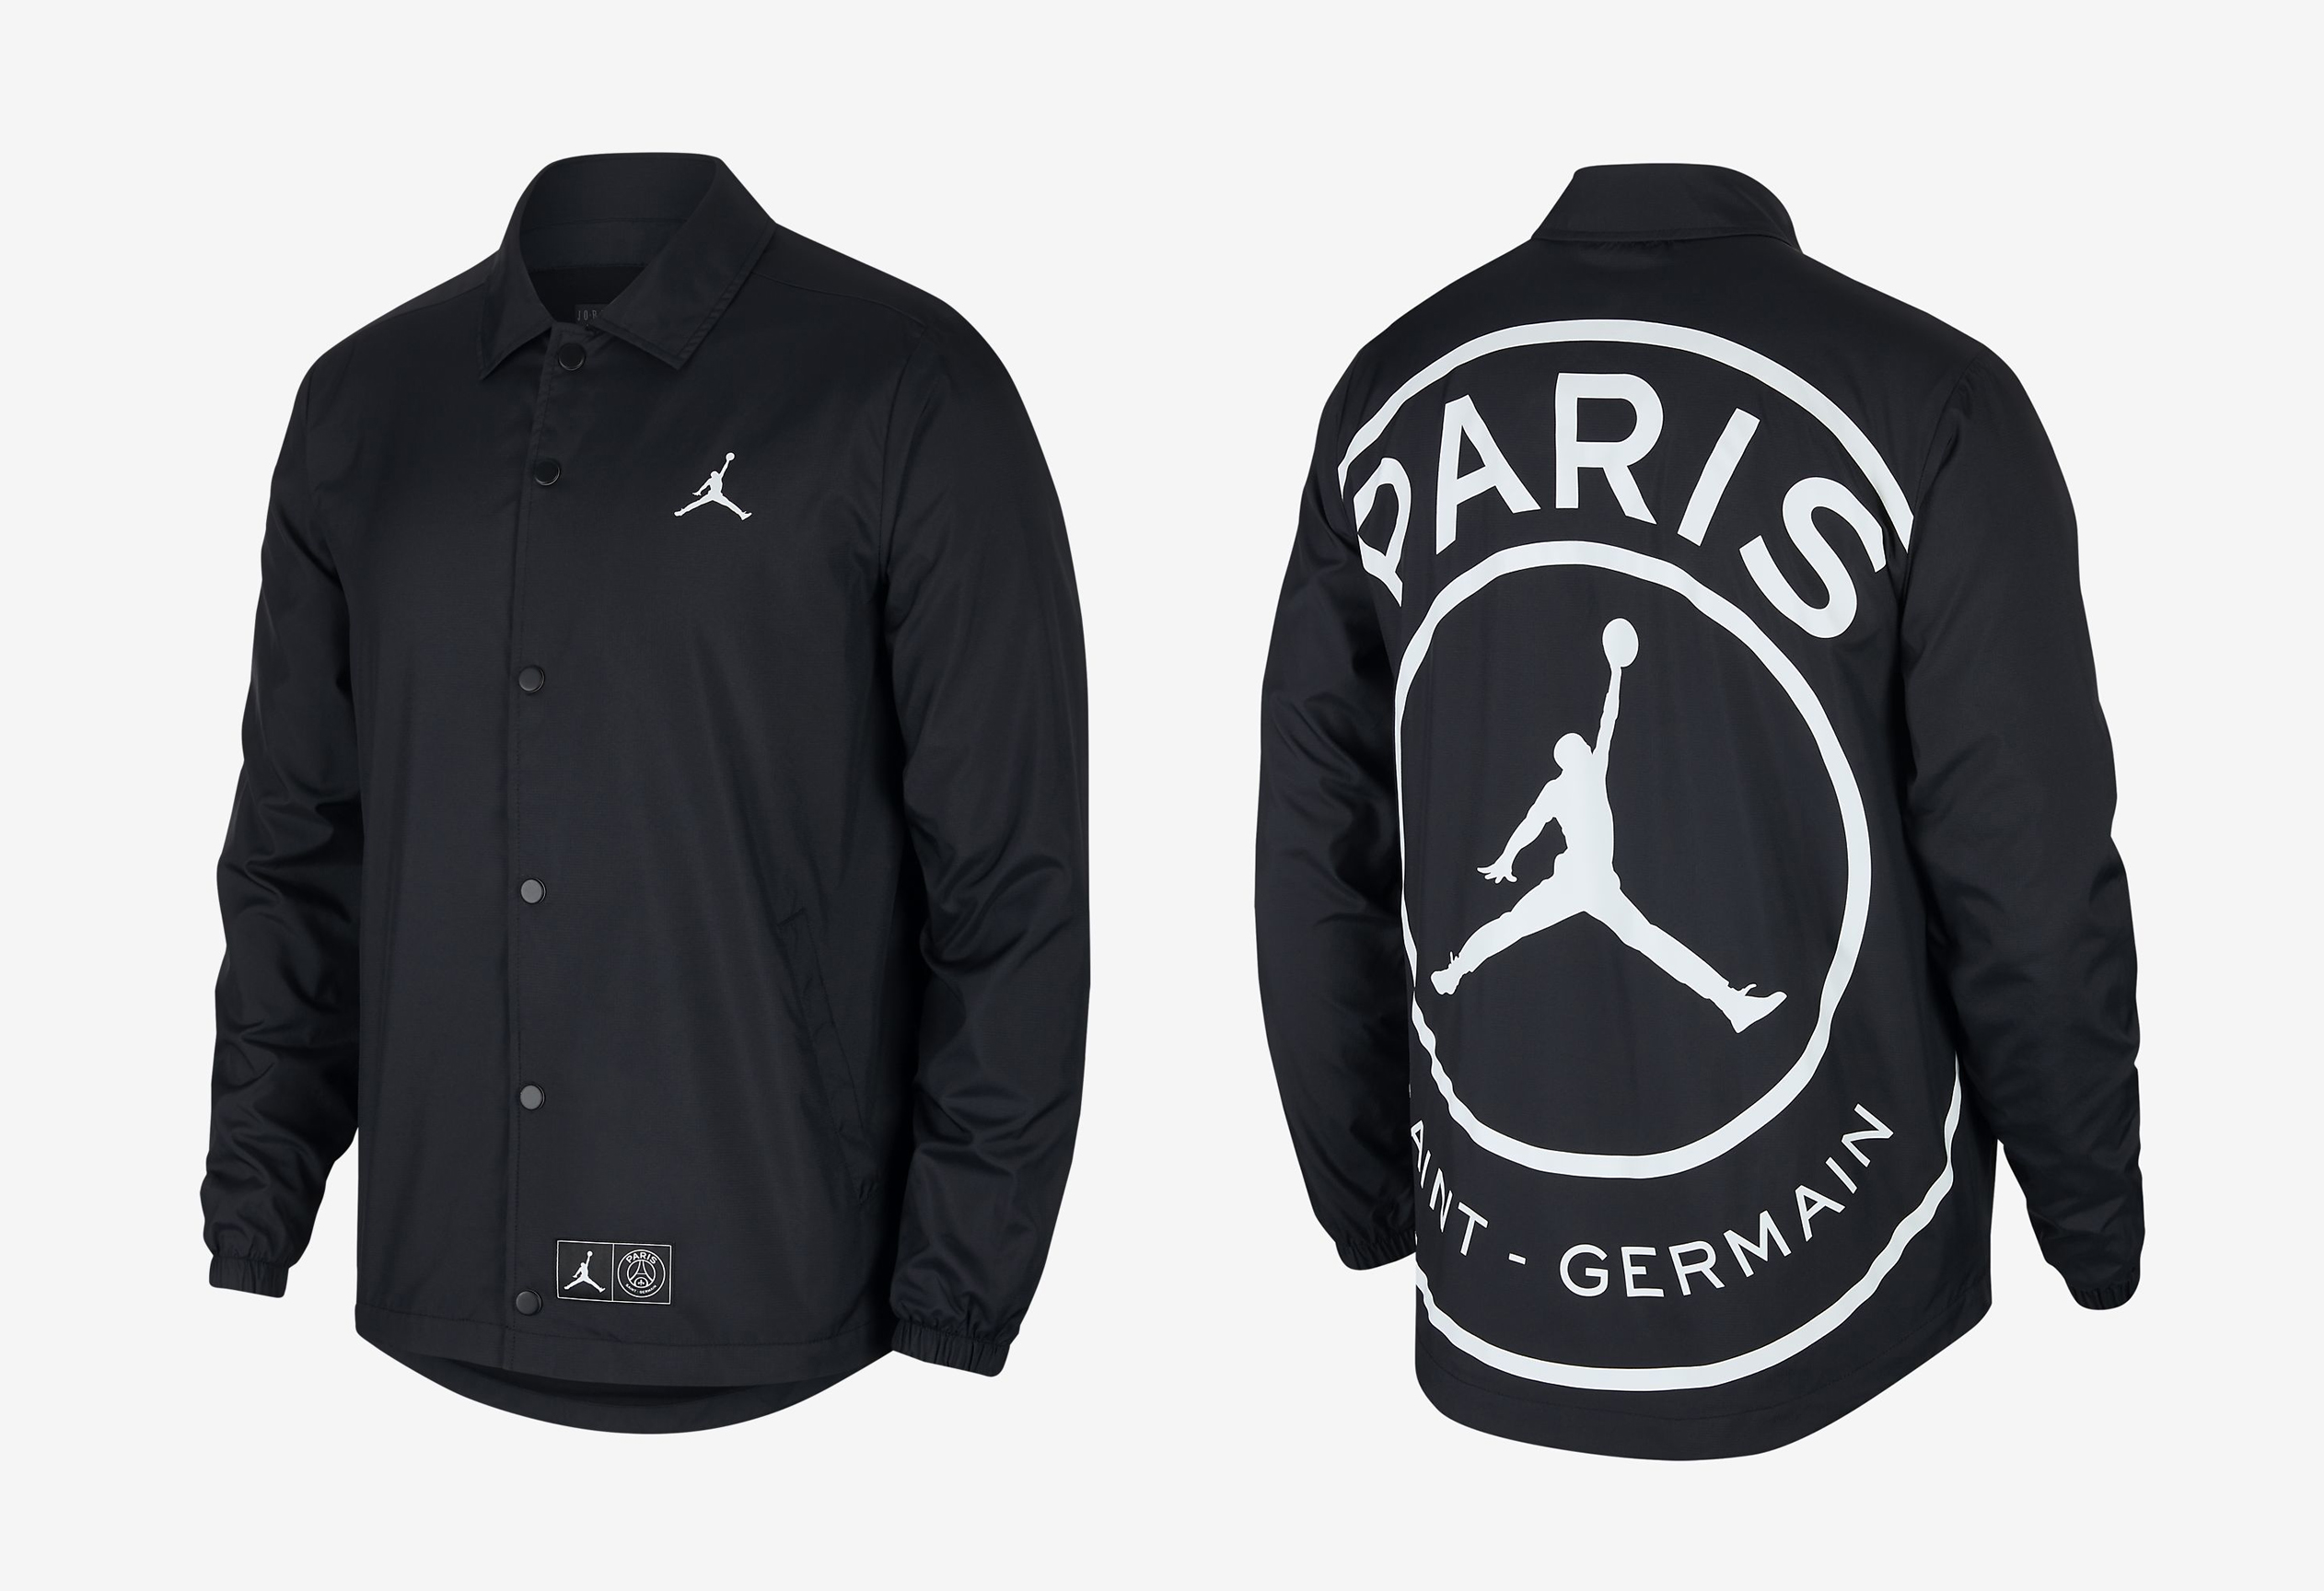 296d6585f7e The Jordan Brand and Paris Saint-Germain Collabo is dropping this ...